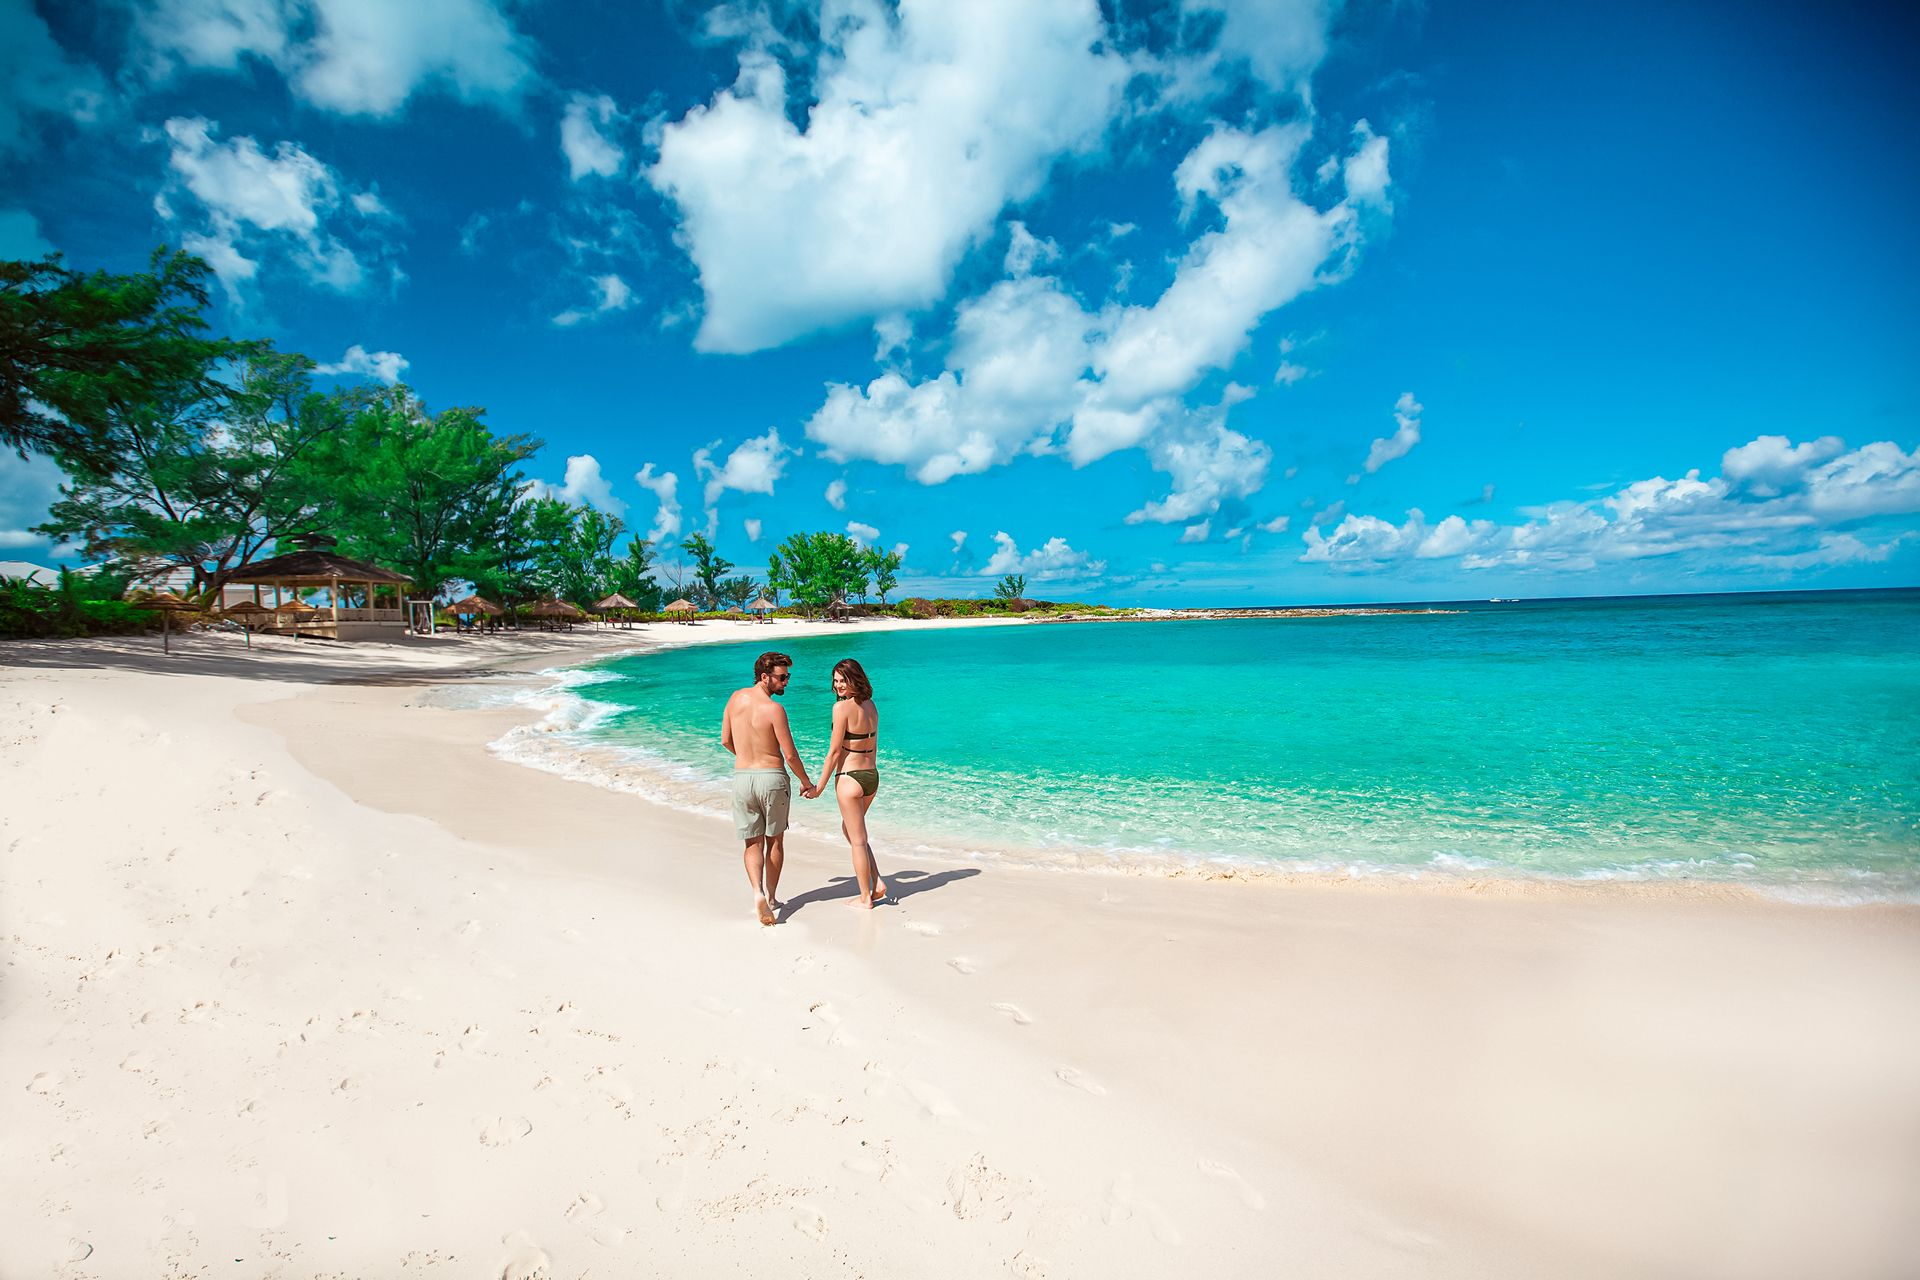 Sandals Royal Bahamian Beach Couple